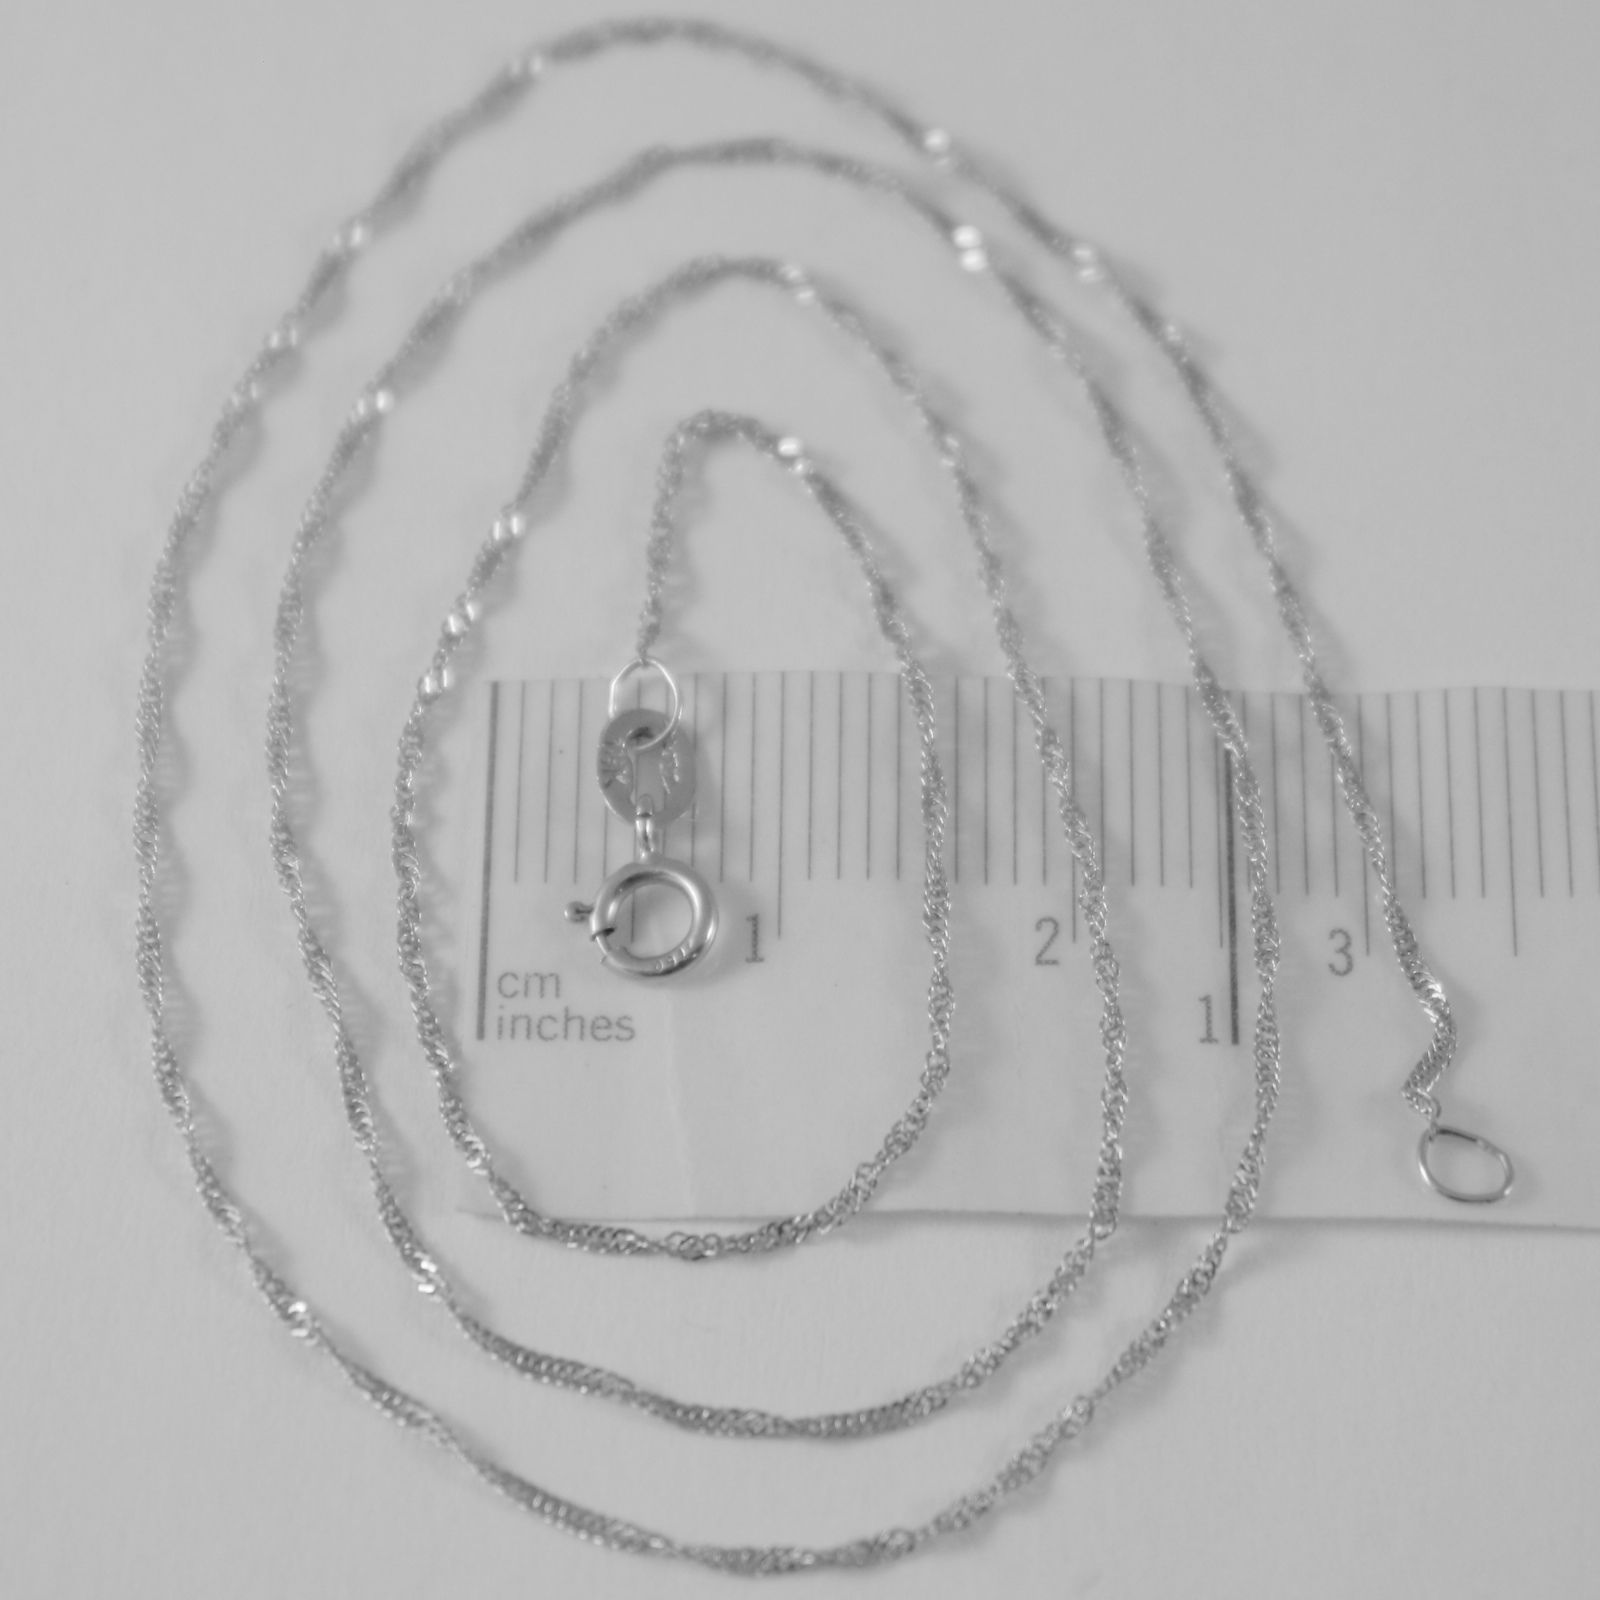 SOLID 18K WHITE GOLD SINGAPORE BRAID ROPE CHAIN 16 INCHES, 1 MM, MADE IN ITALY